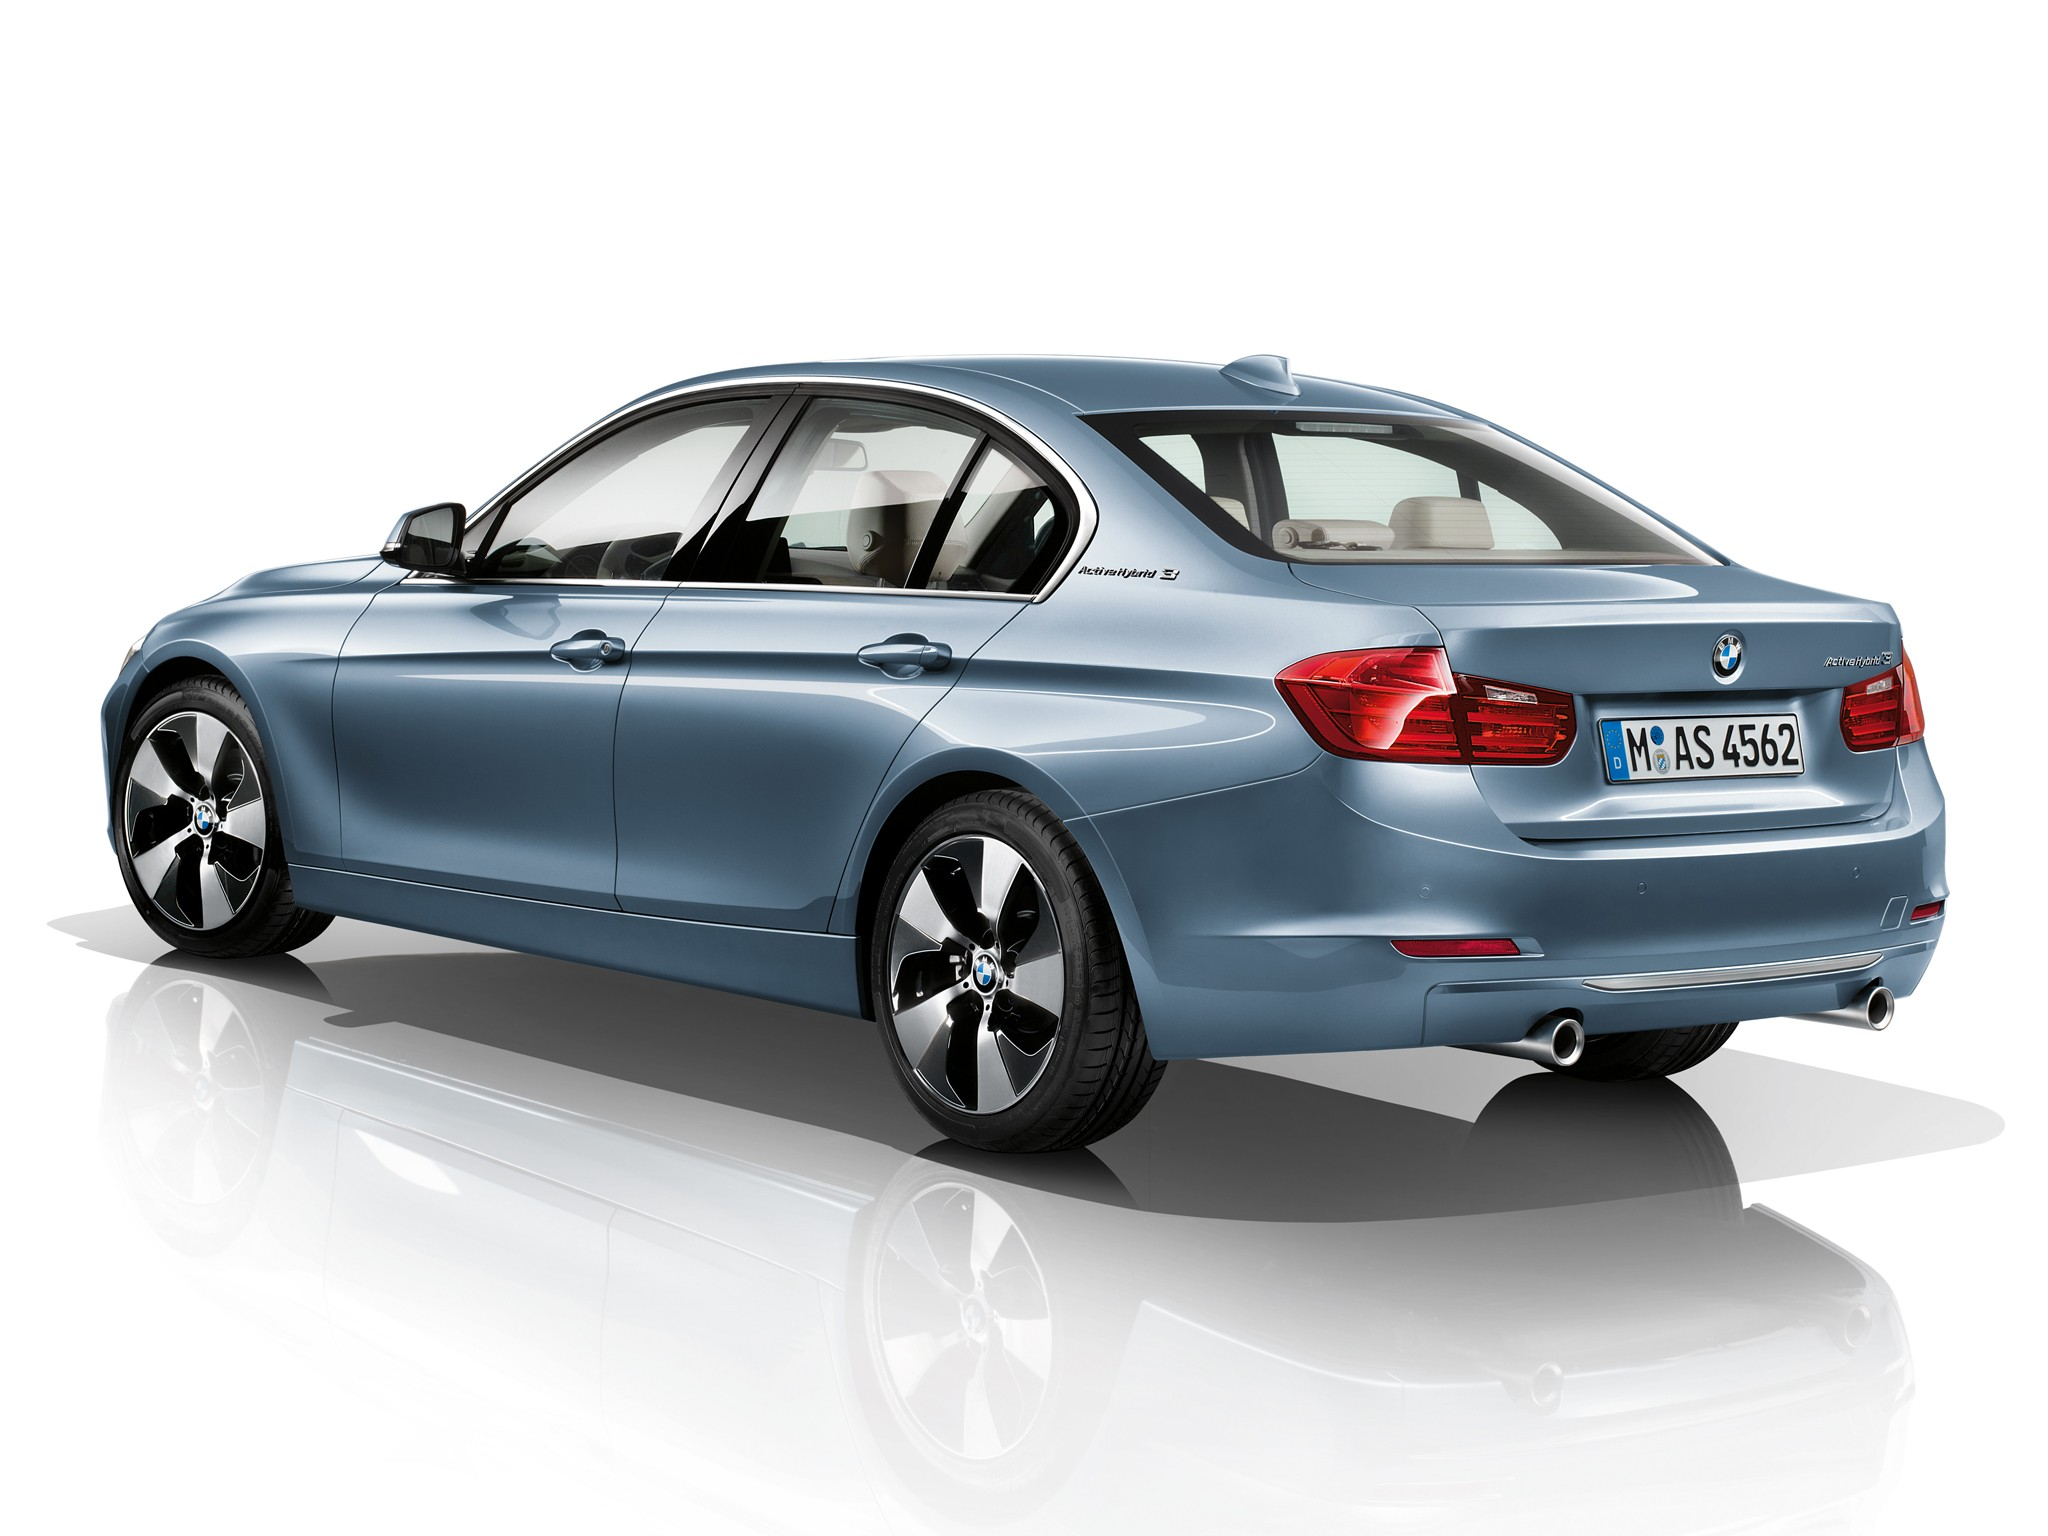 bmw 3 series f30 specs 2012 2013 2014 2015 2016 autoevolution. Black Bedroom Furniture Sets. Home Design Ideas